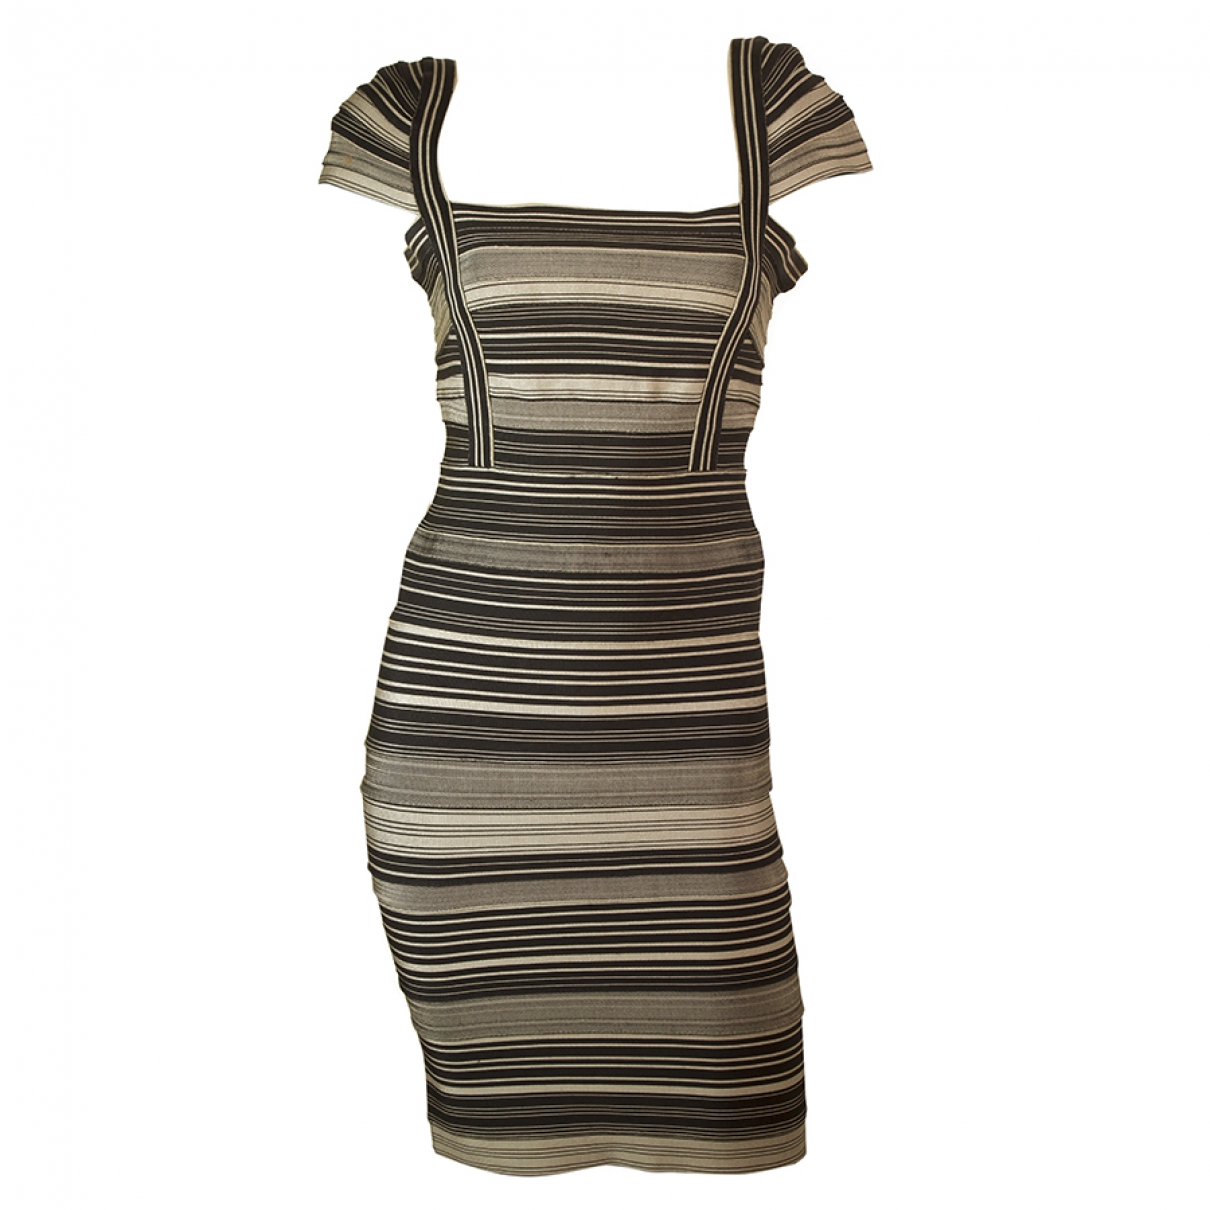 Herve Leger \N Multicolour dress for Women M International